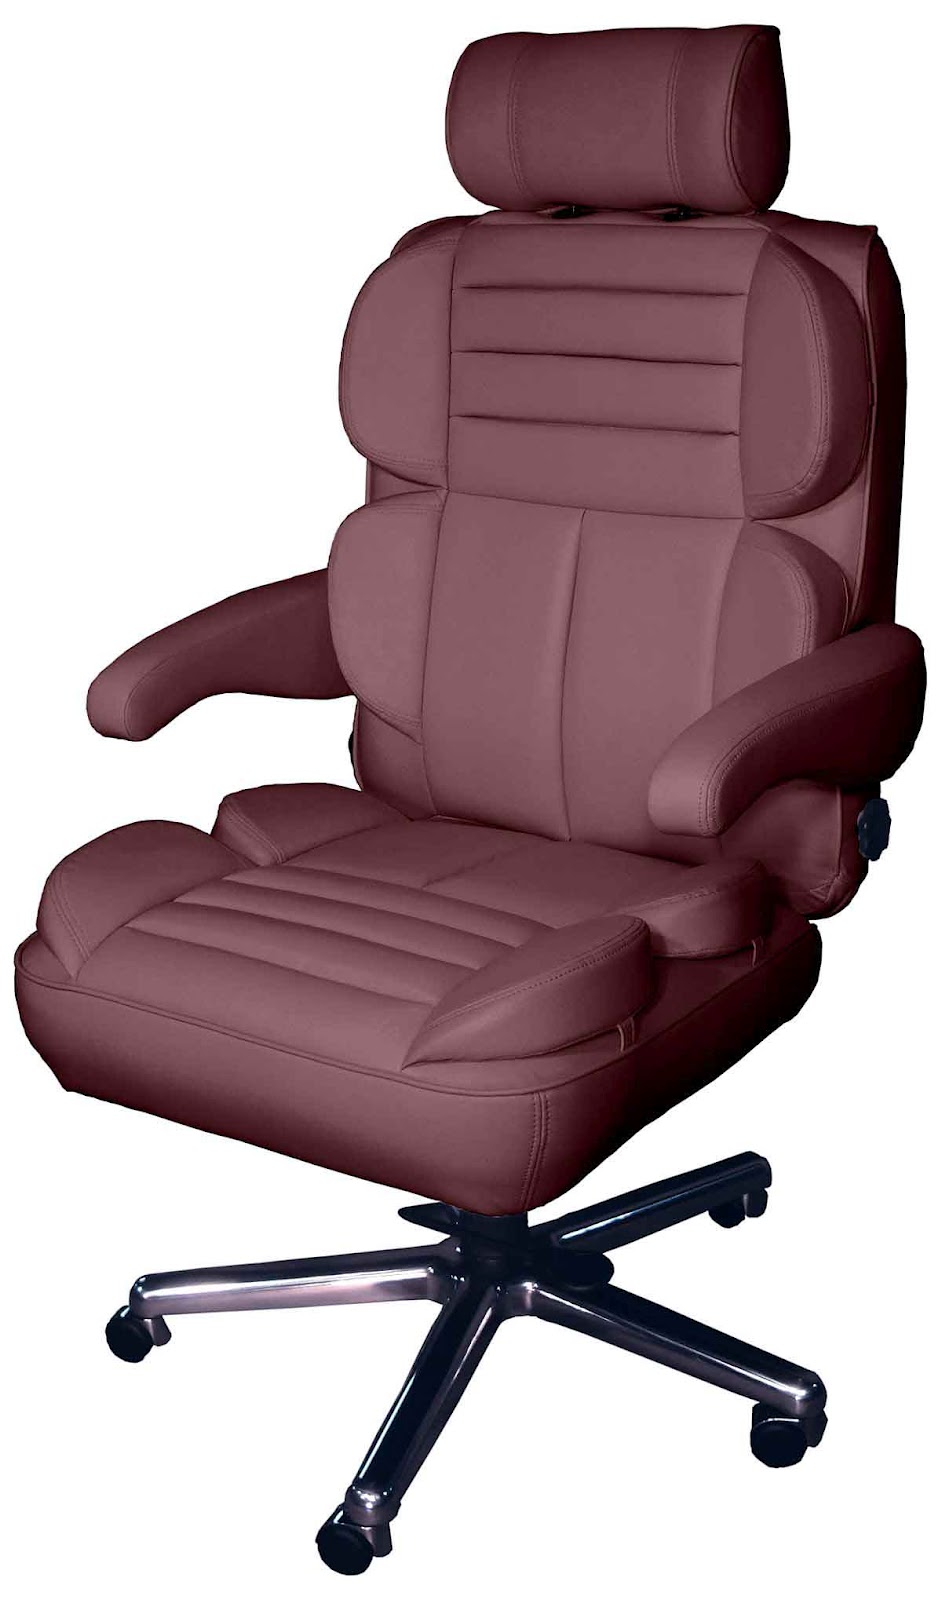 fortable office chairs designs